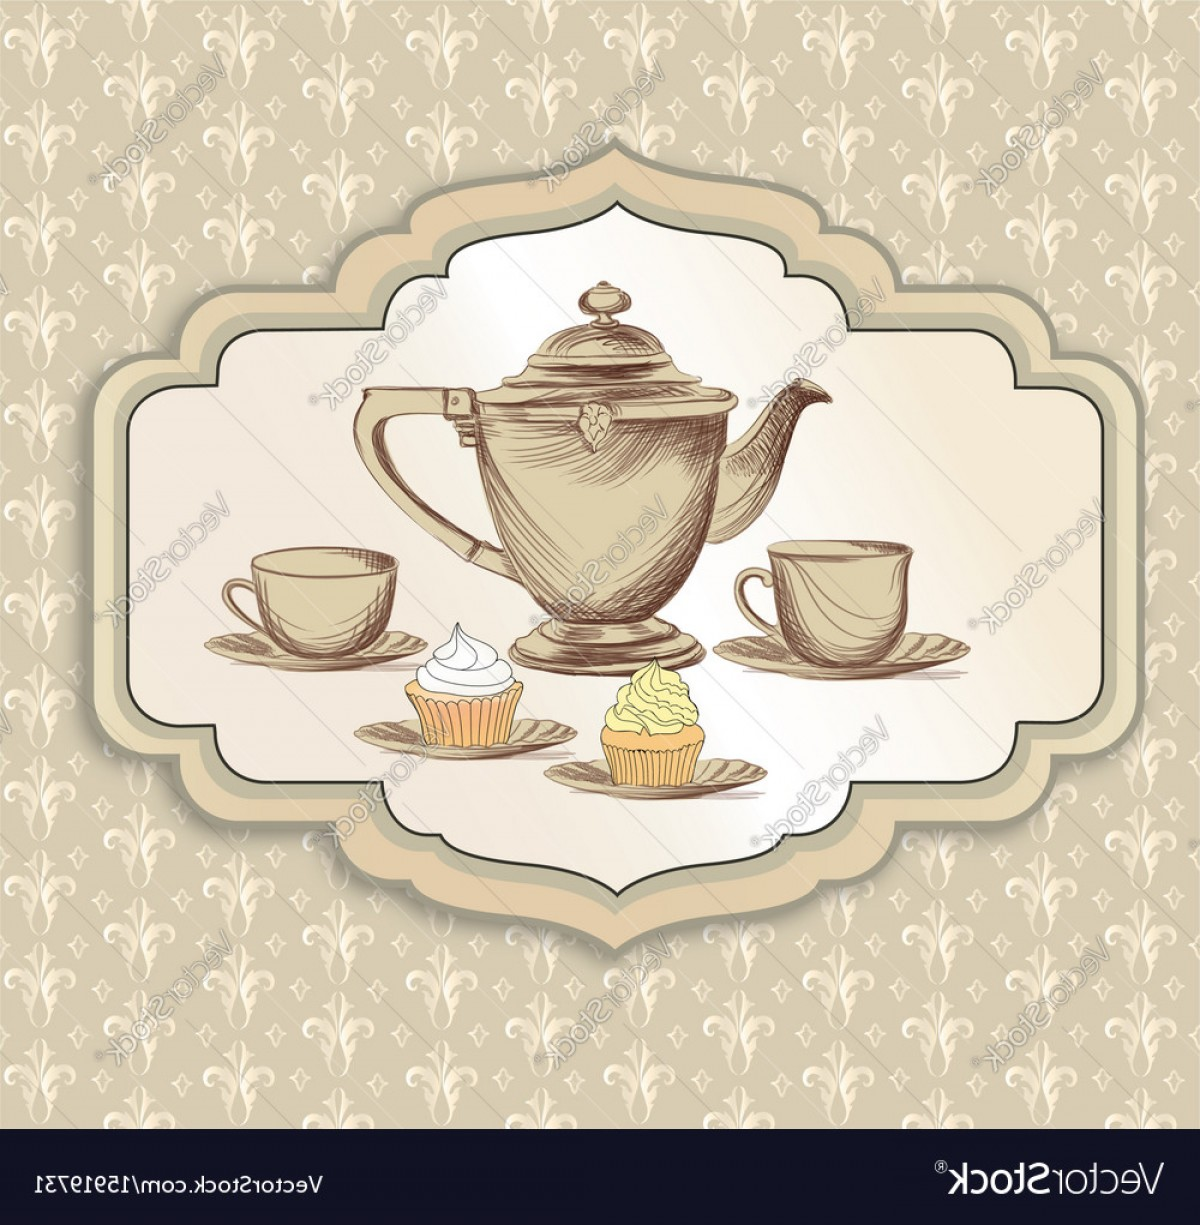 Vintage Tea Cup Vector: Tea Cup Kettle Retro Card Tea Time Vintage Vector